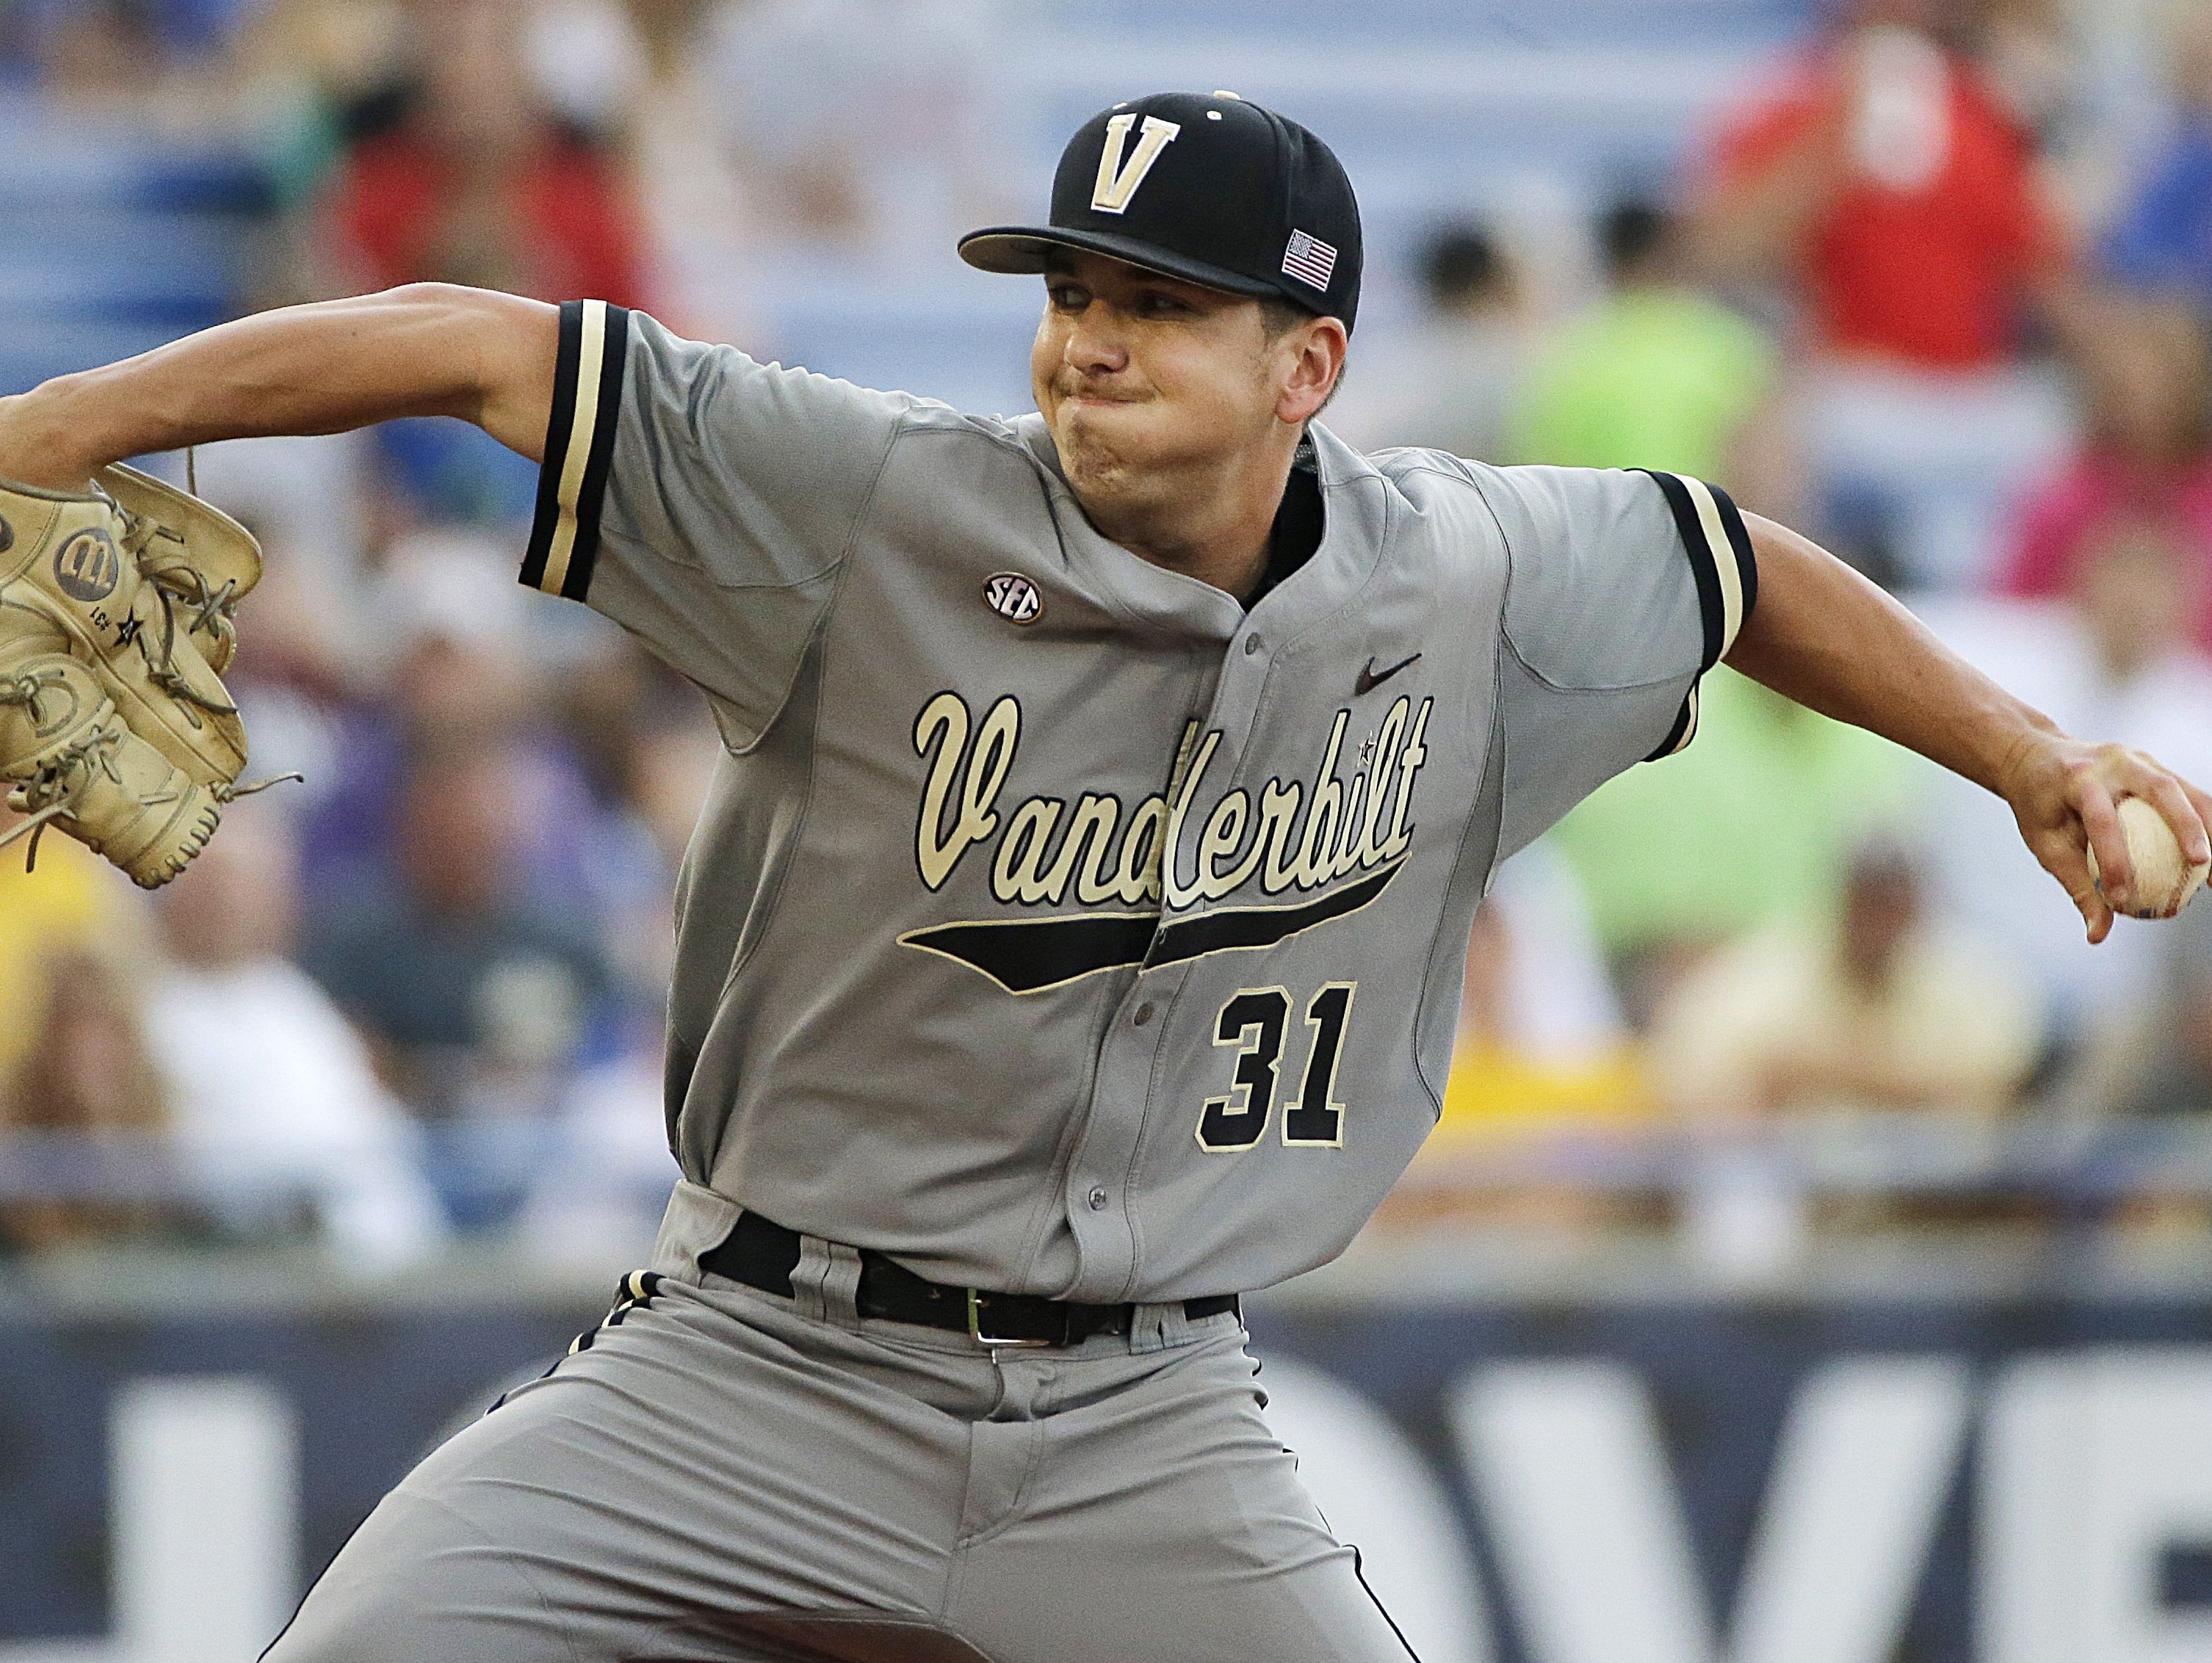 Vanderbilt pitcher Ryan Johnson delivers against Florida during the first inning of a SEC tournament championship game Sunday, May 24, 2015, in Hoover, Ala.